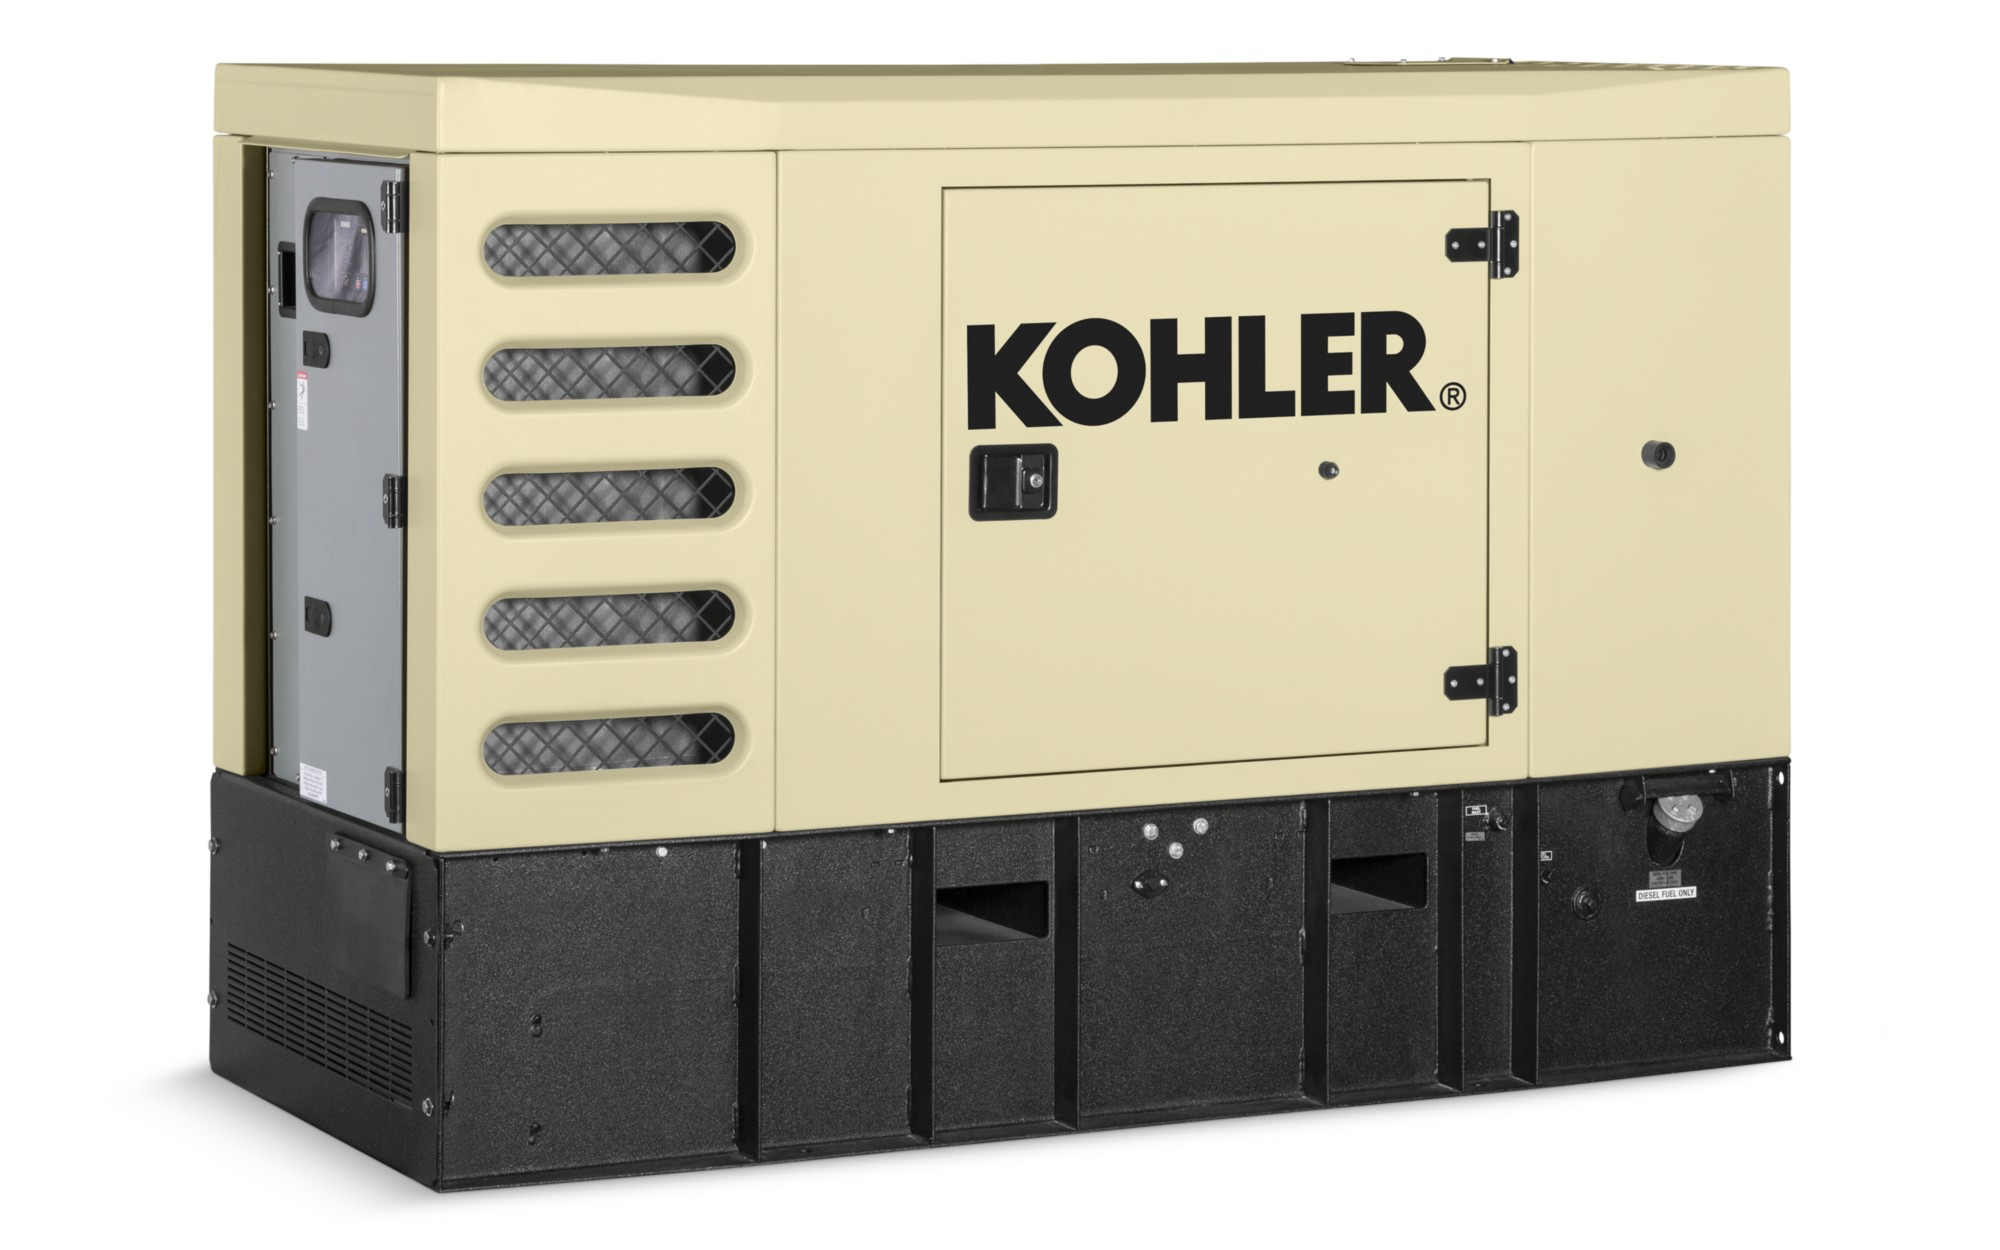 South Shore Generator - KOLHER Industrial Generator